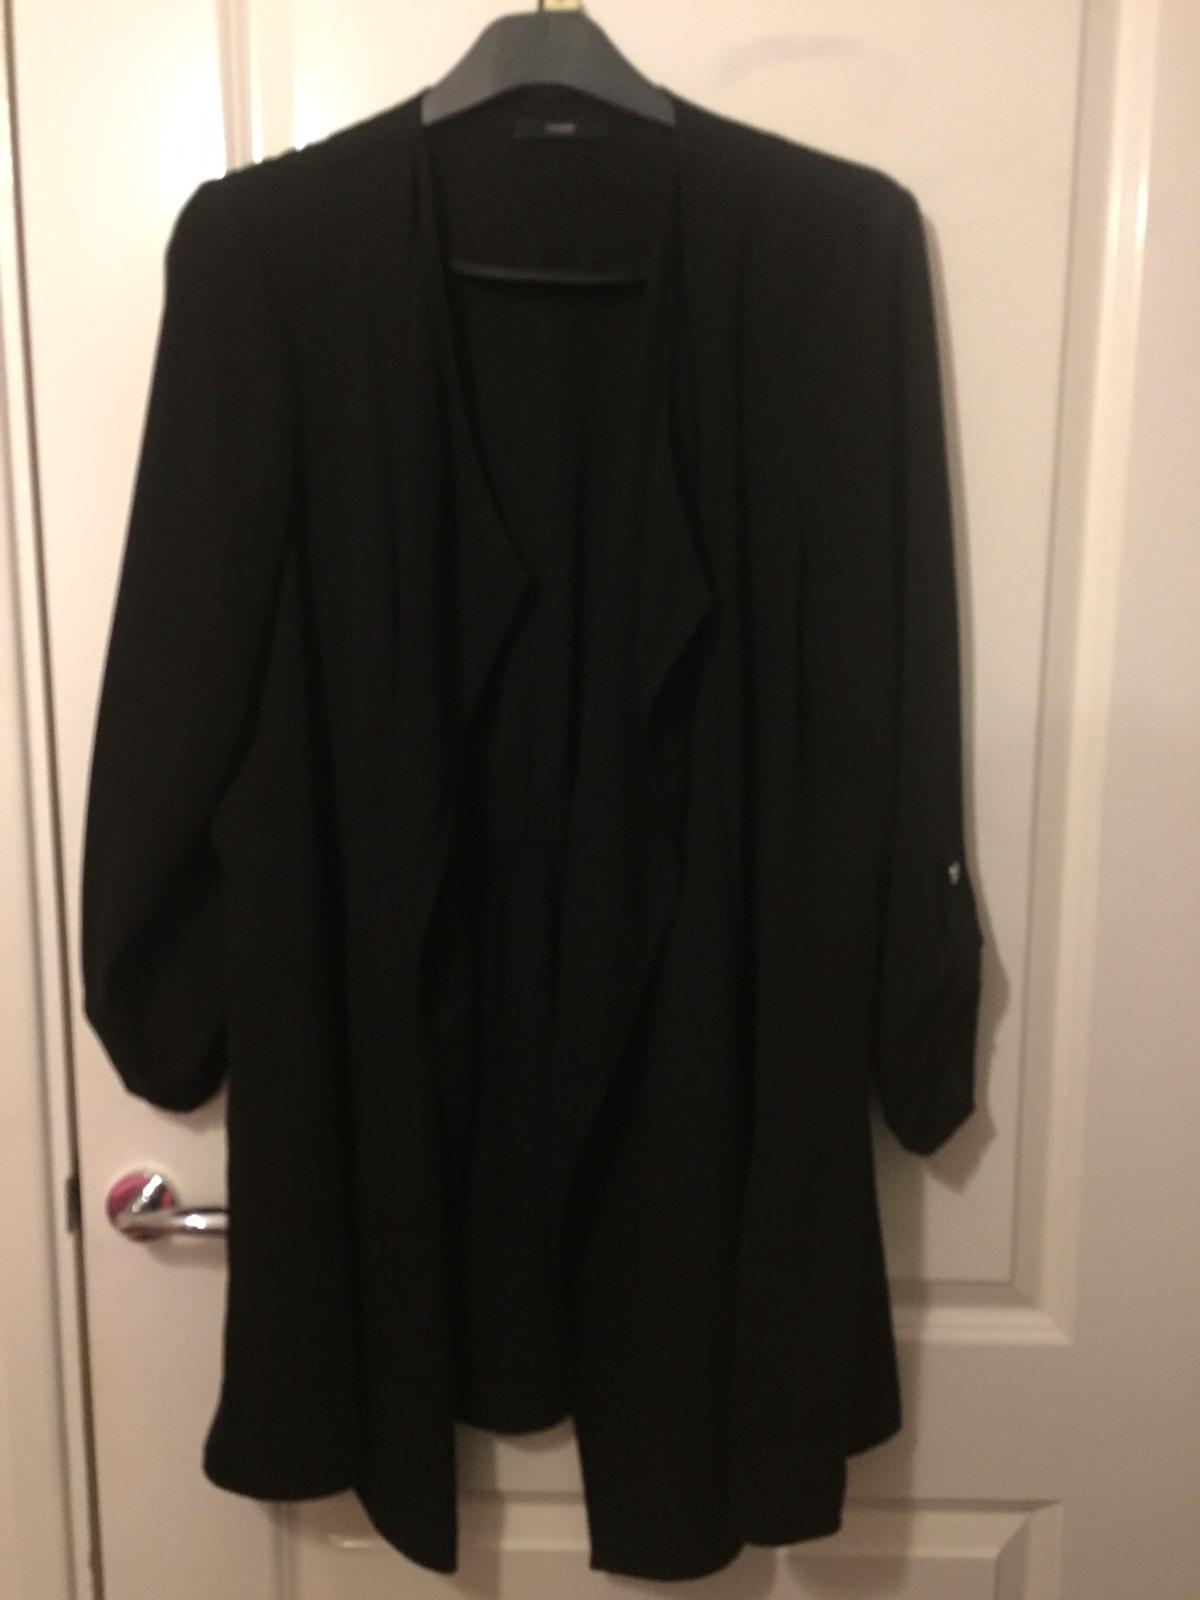 Only just bought at Christmas Asda long waterfall blazer Size 18 Black Never been worn Button detail turning sleeves up